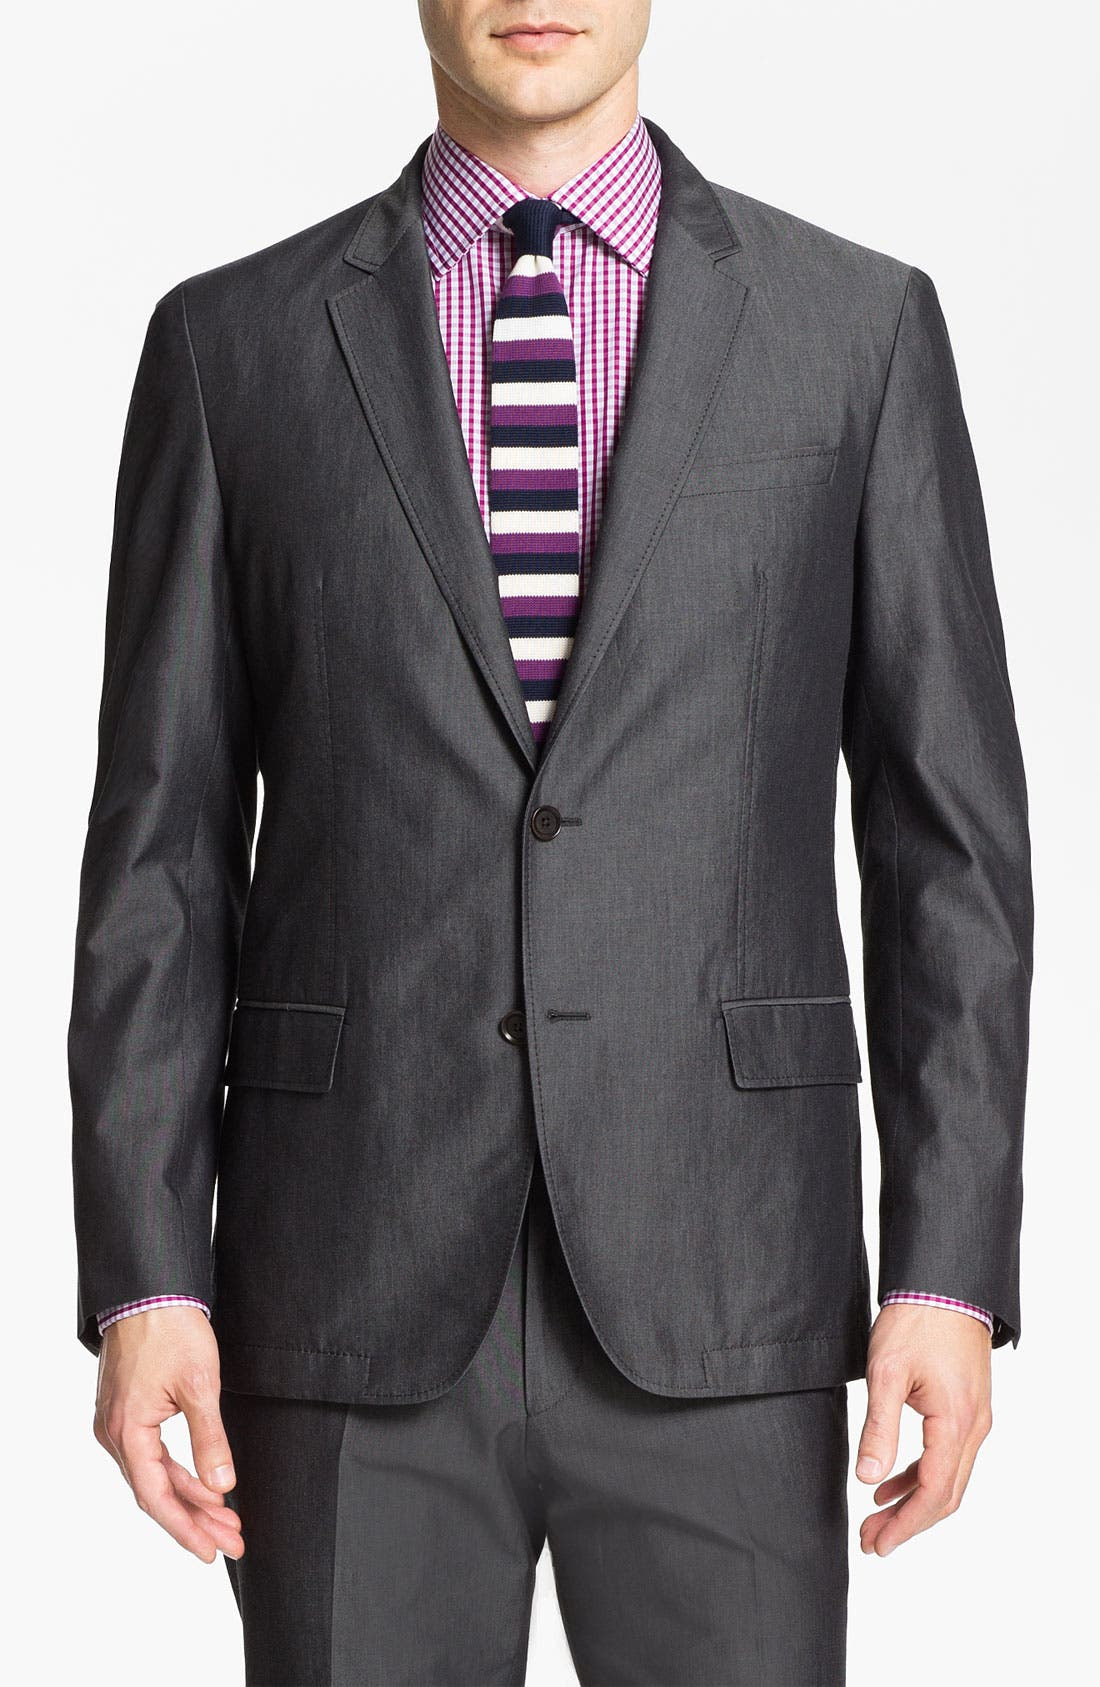 Alternate Image 1 Selected - BOSS HUGO BOSS 'Heaven/Fly' Trim Fit Cotton Blend Suit